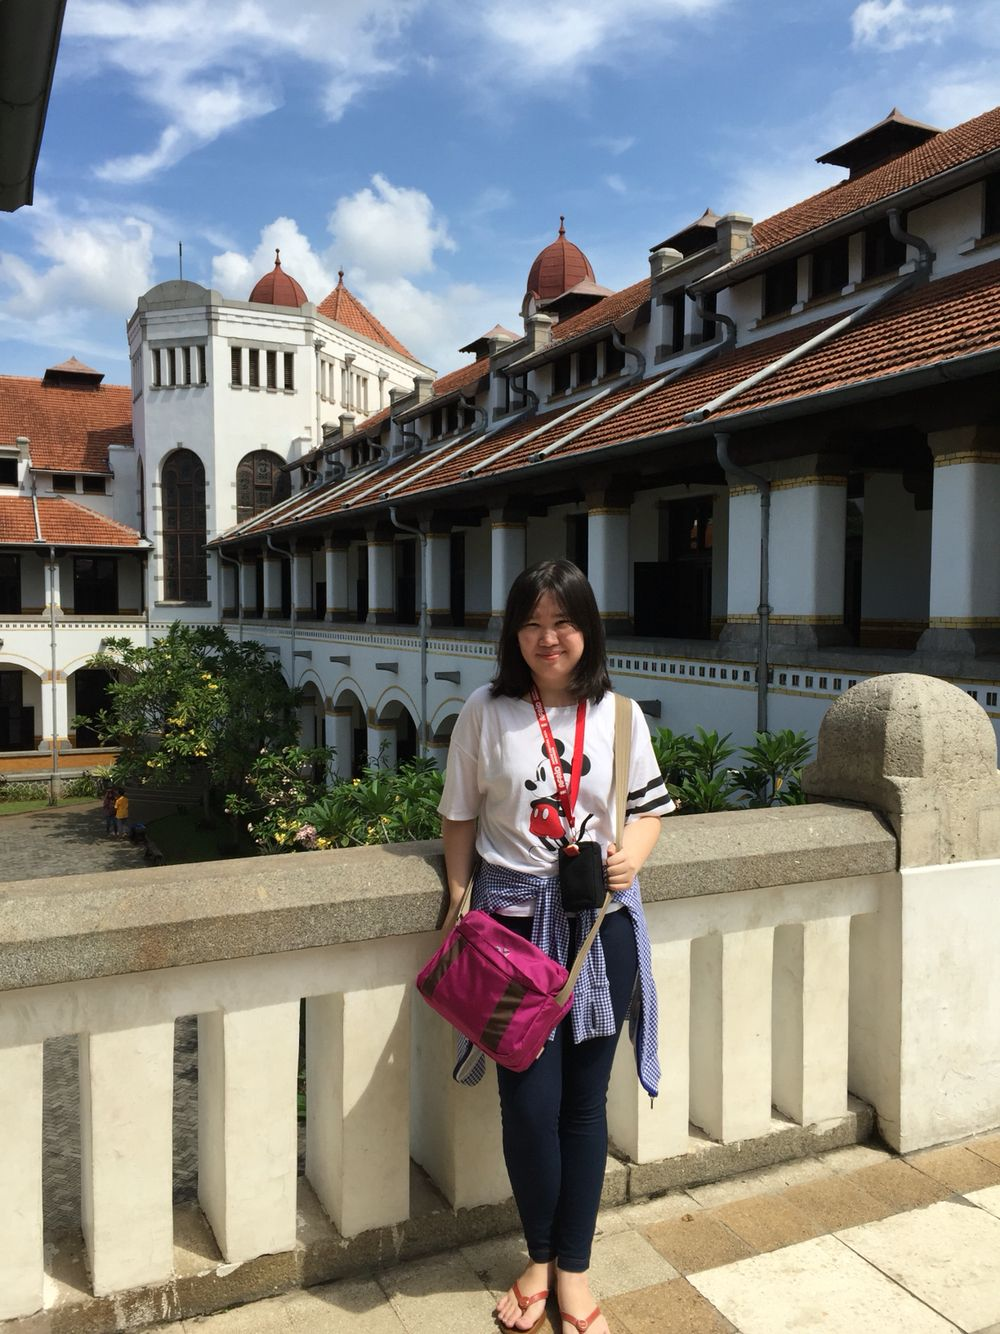 Nis Museum Lawang Sewu Semarang Central Java Fun Travel Kab